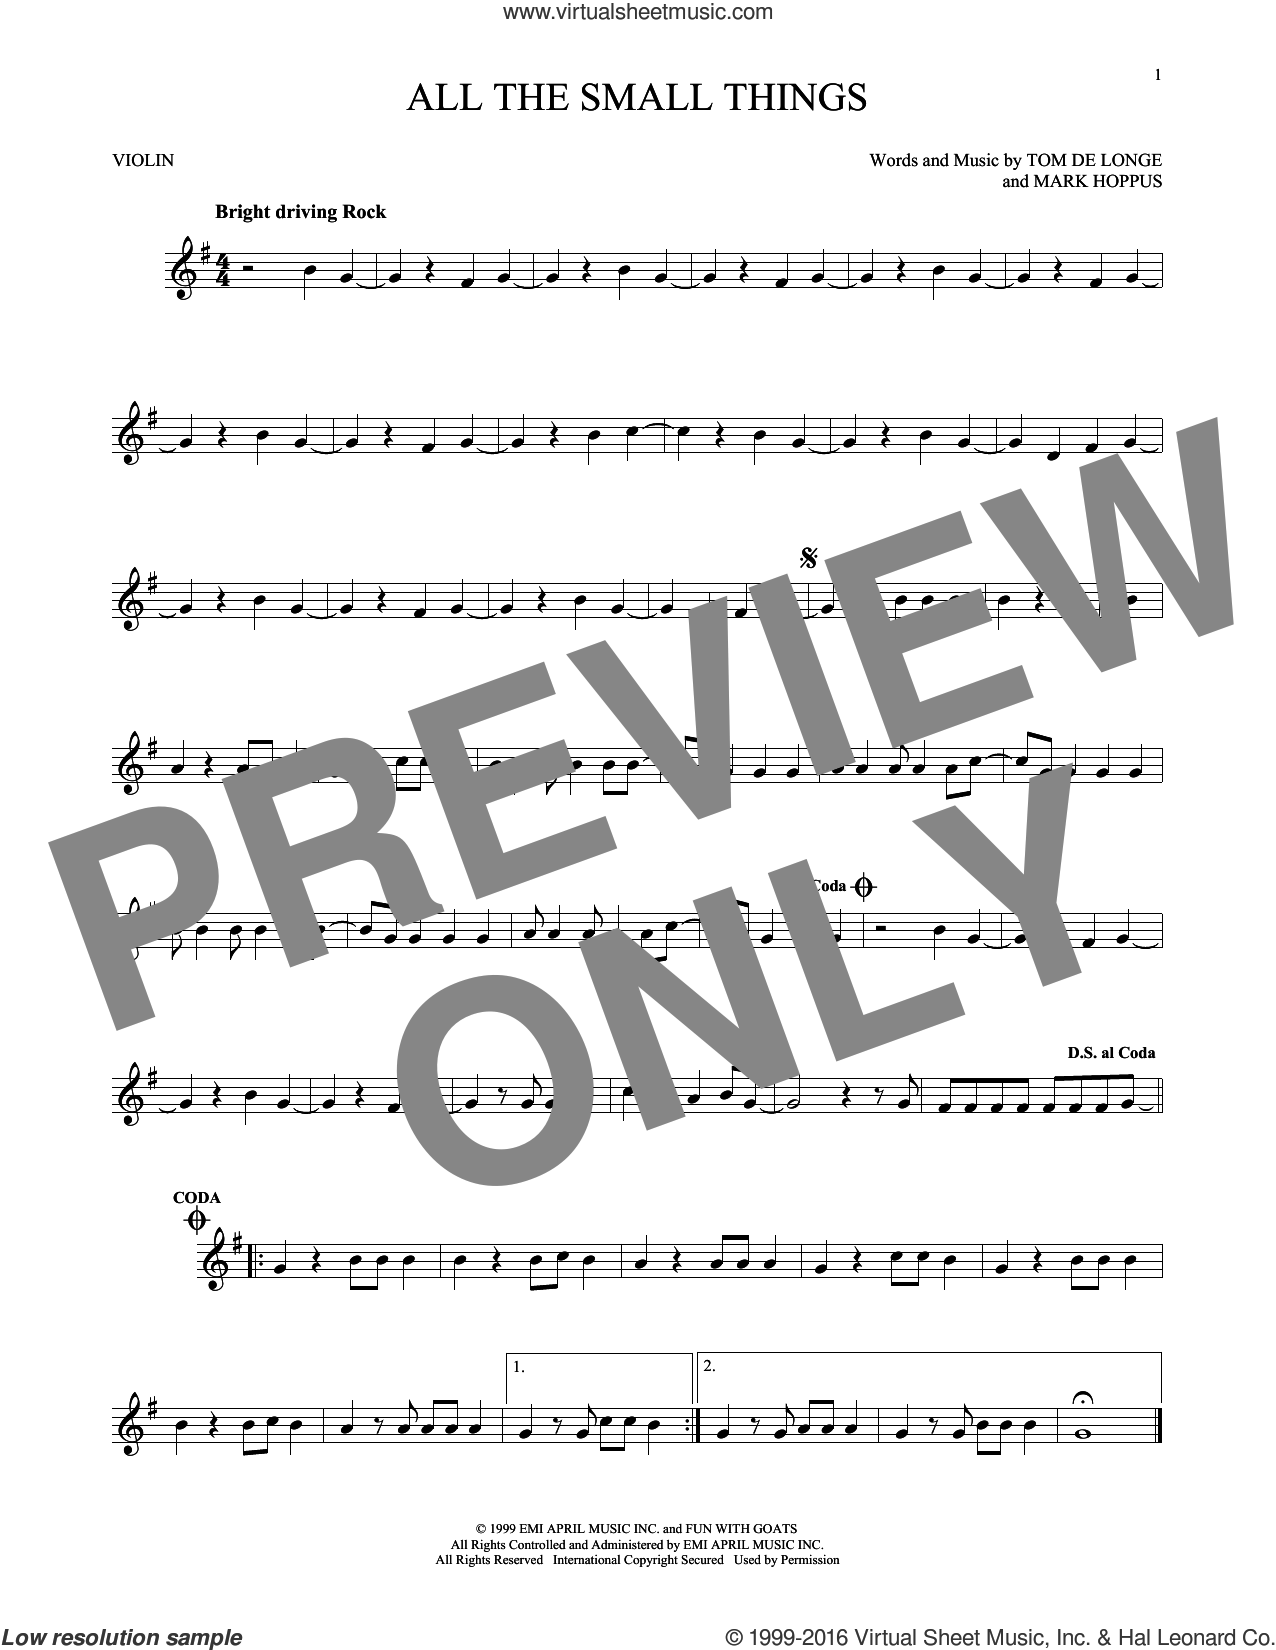 All The Small Things sheet music for violin solo by Blink 182, Mark Hoppus, Tom DeLonge and Travis Barker, intermediate